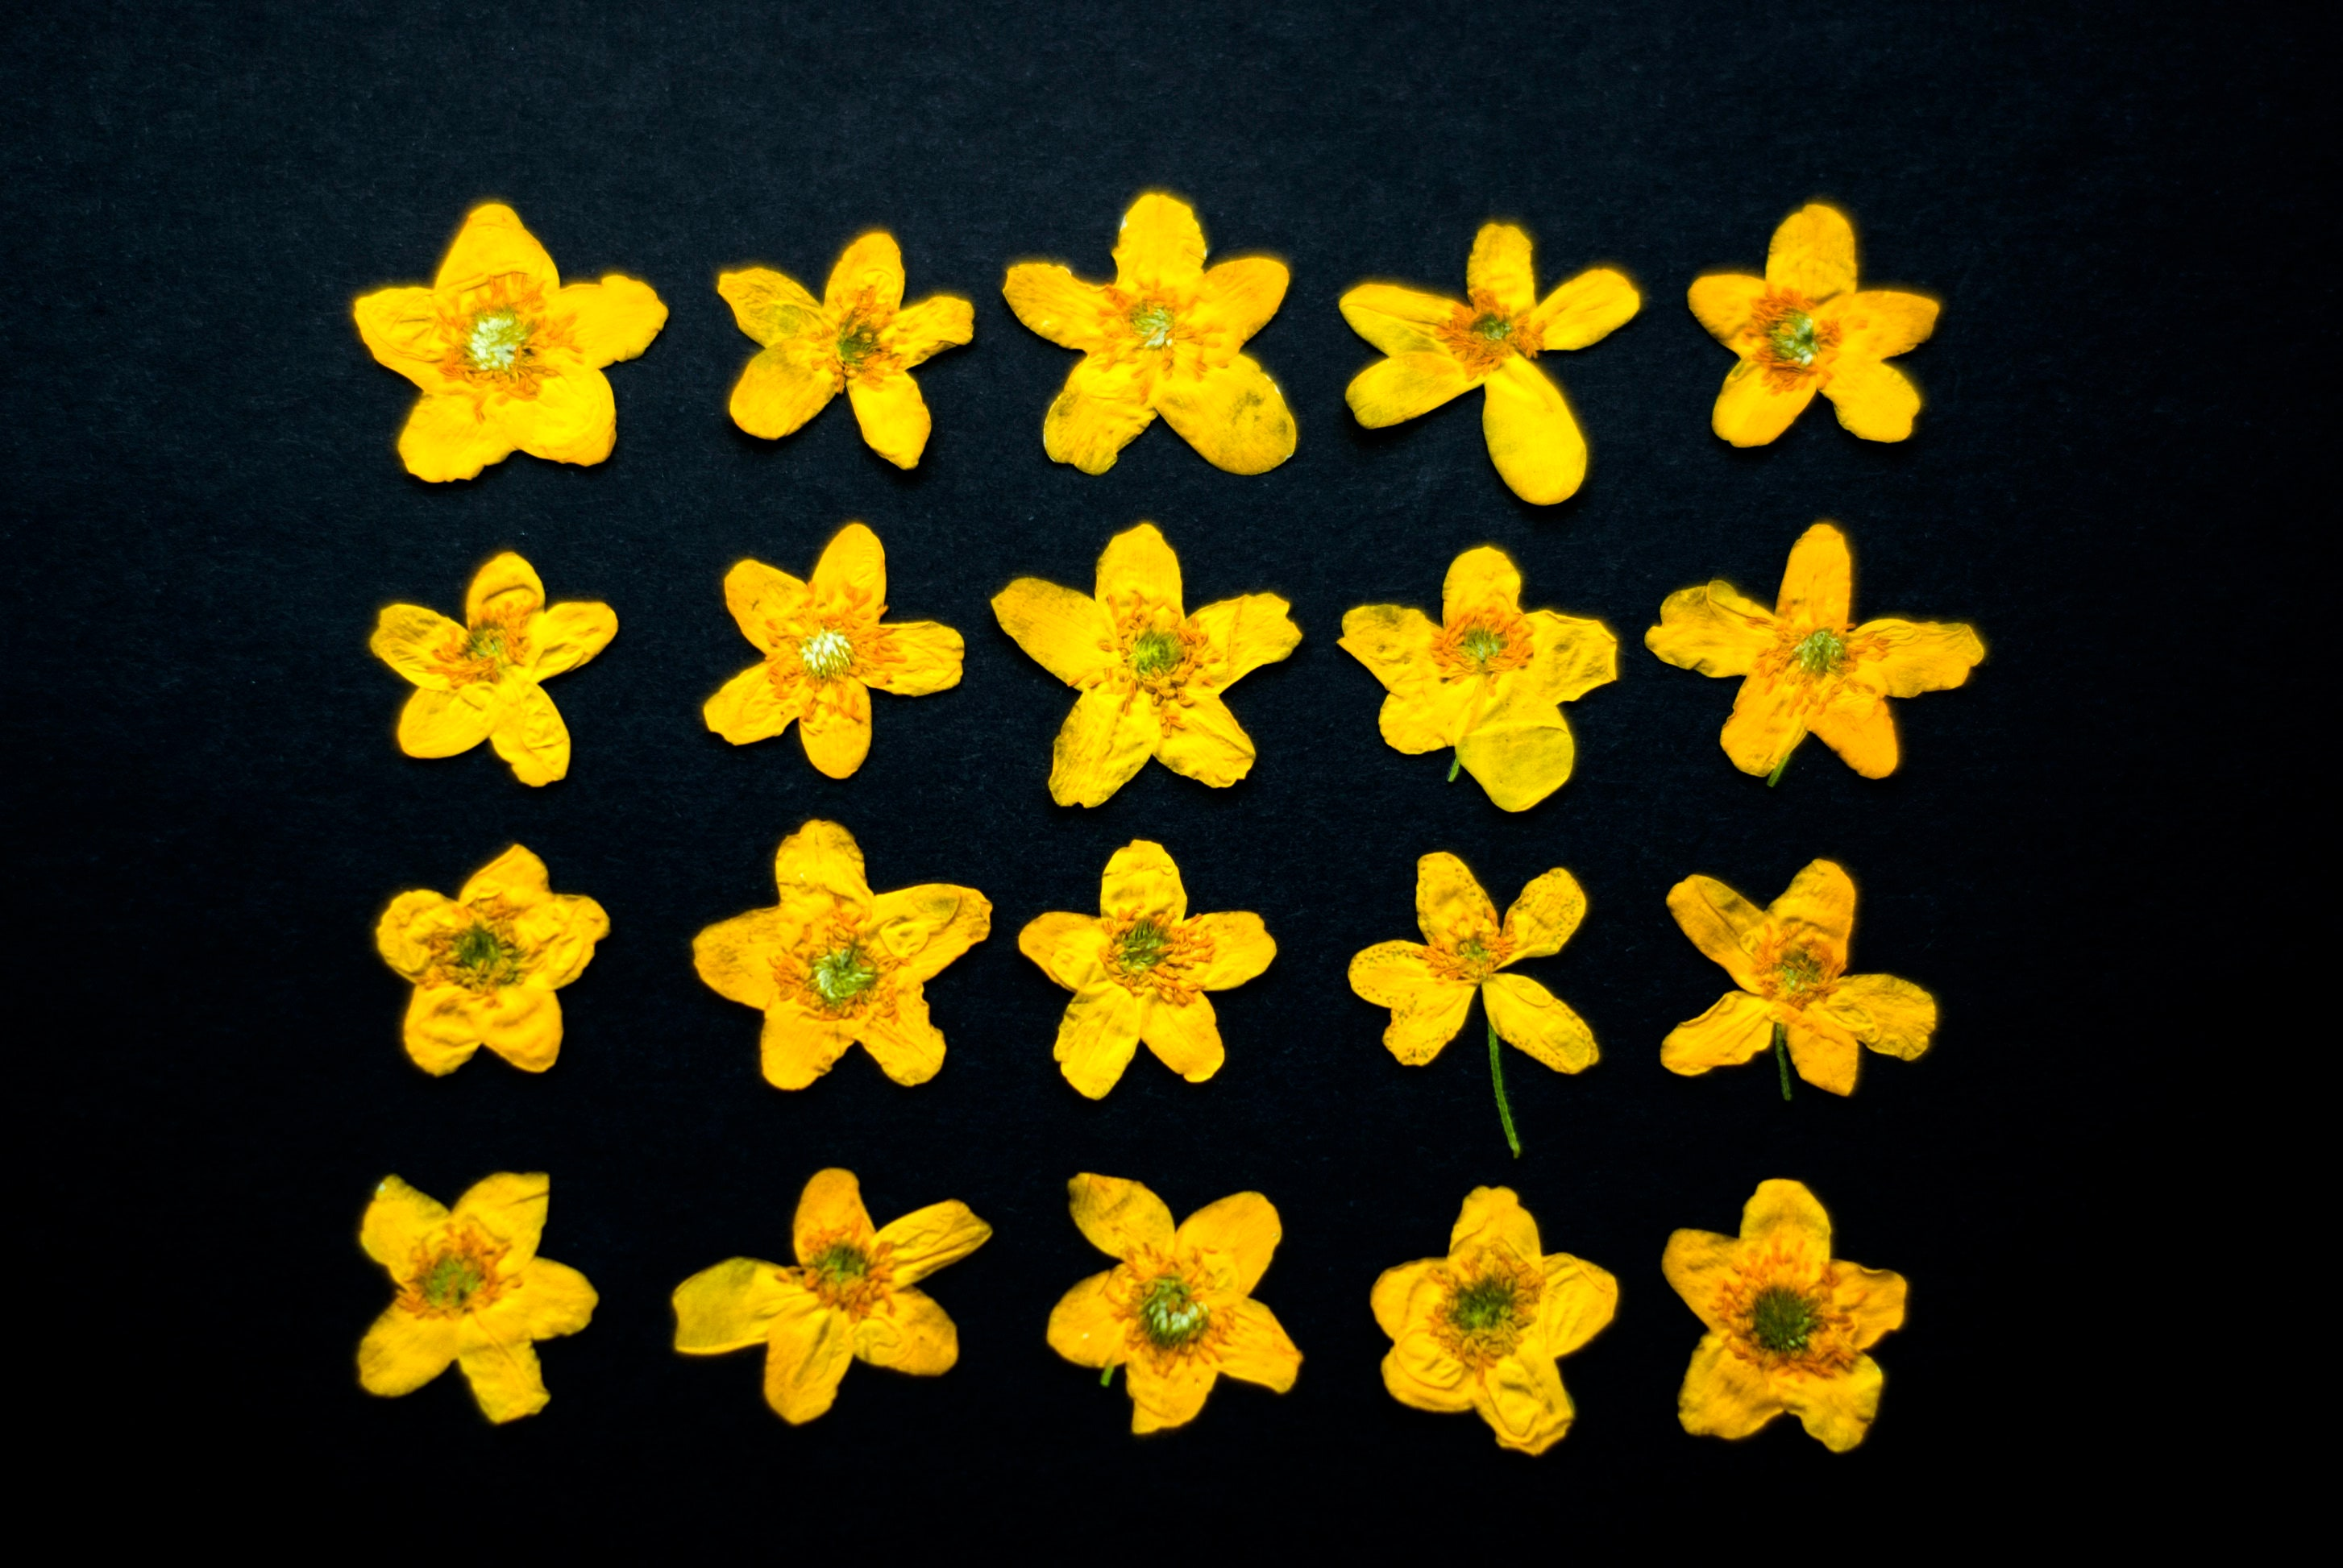 20 Dried Pressed Flowers Wild Yellow Anemone Yellow Dried Etsy